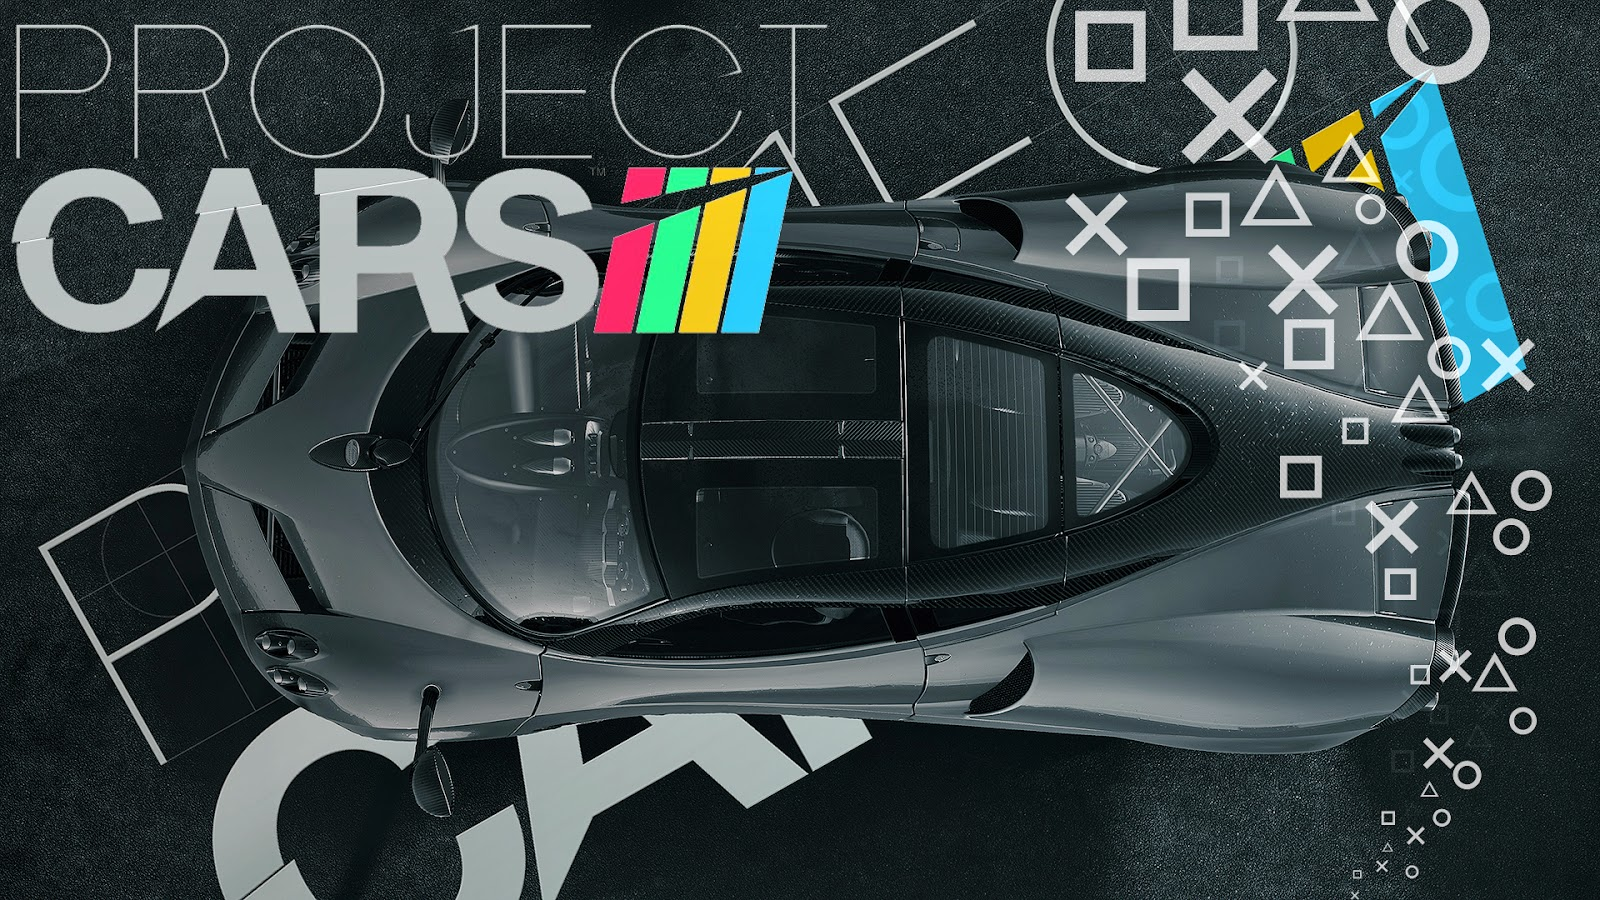 Project Cars E3 Wallpaper and Logo - We Know Gamers